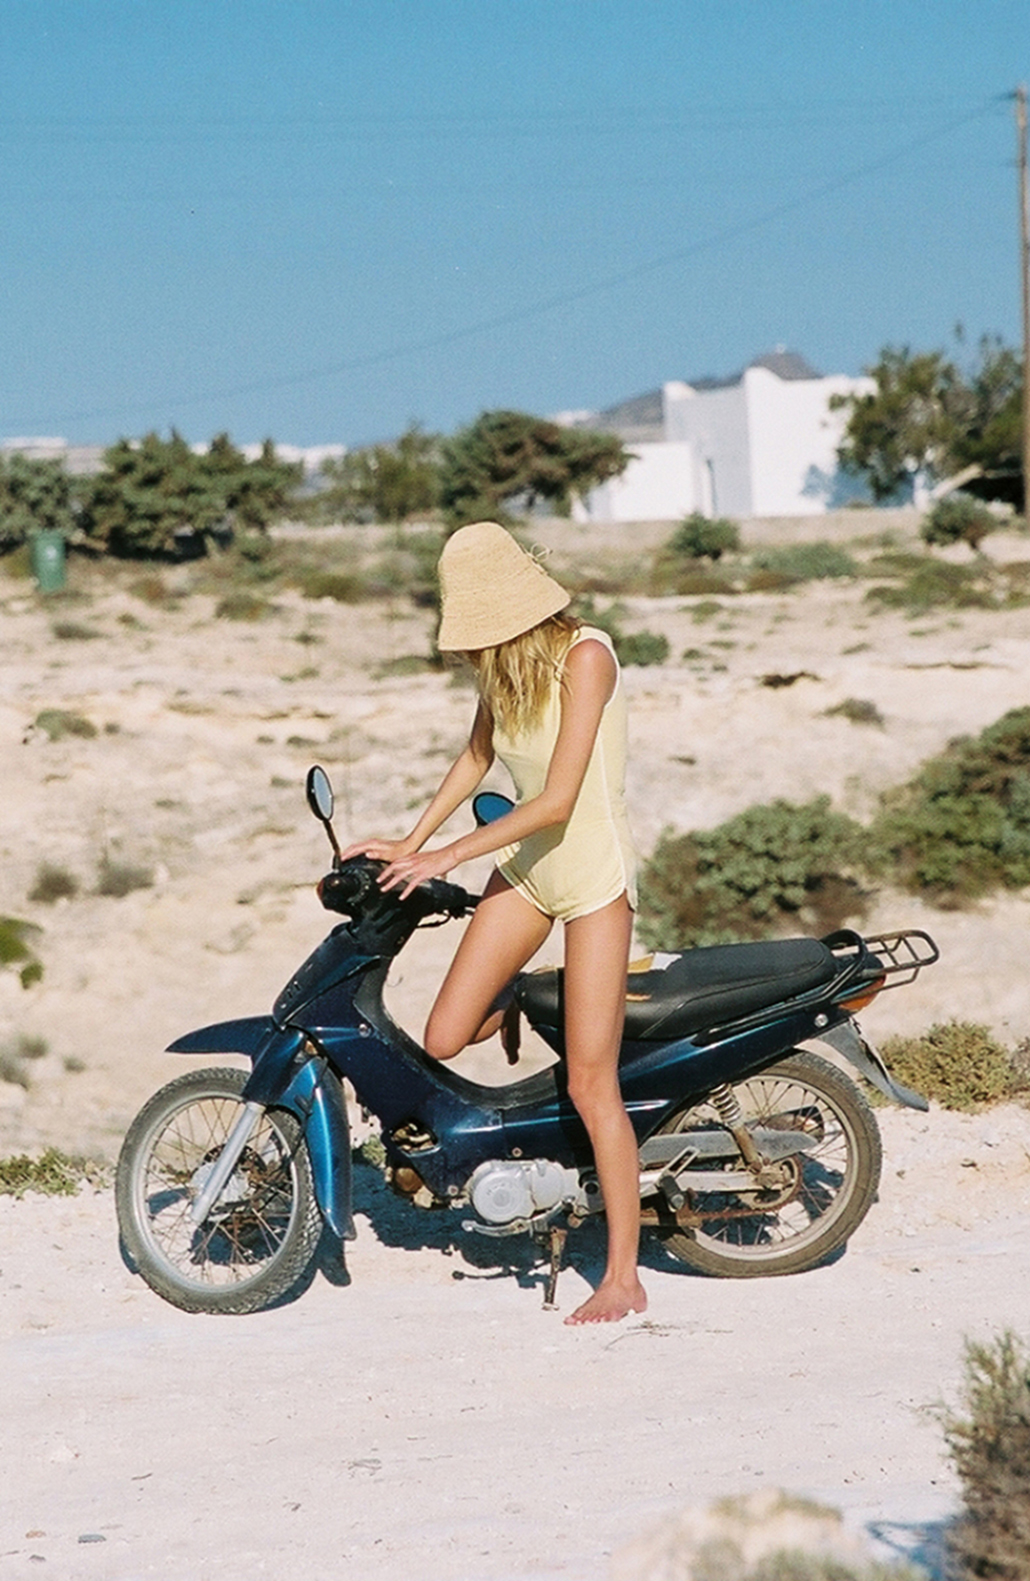 Emma Stern Neilsen in Greece by Photographer Cameron Hammond for ELSEWHERE